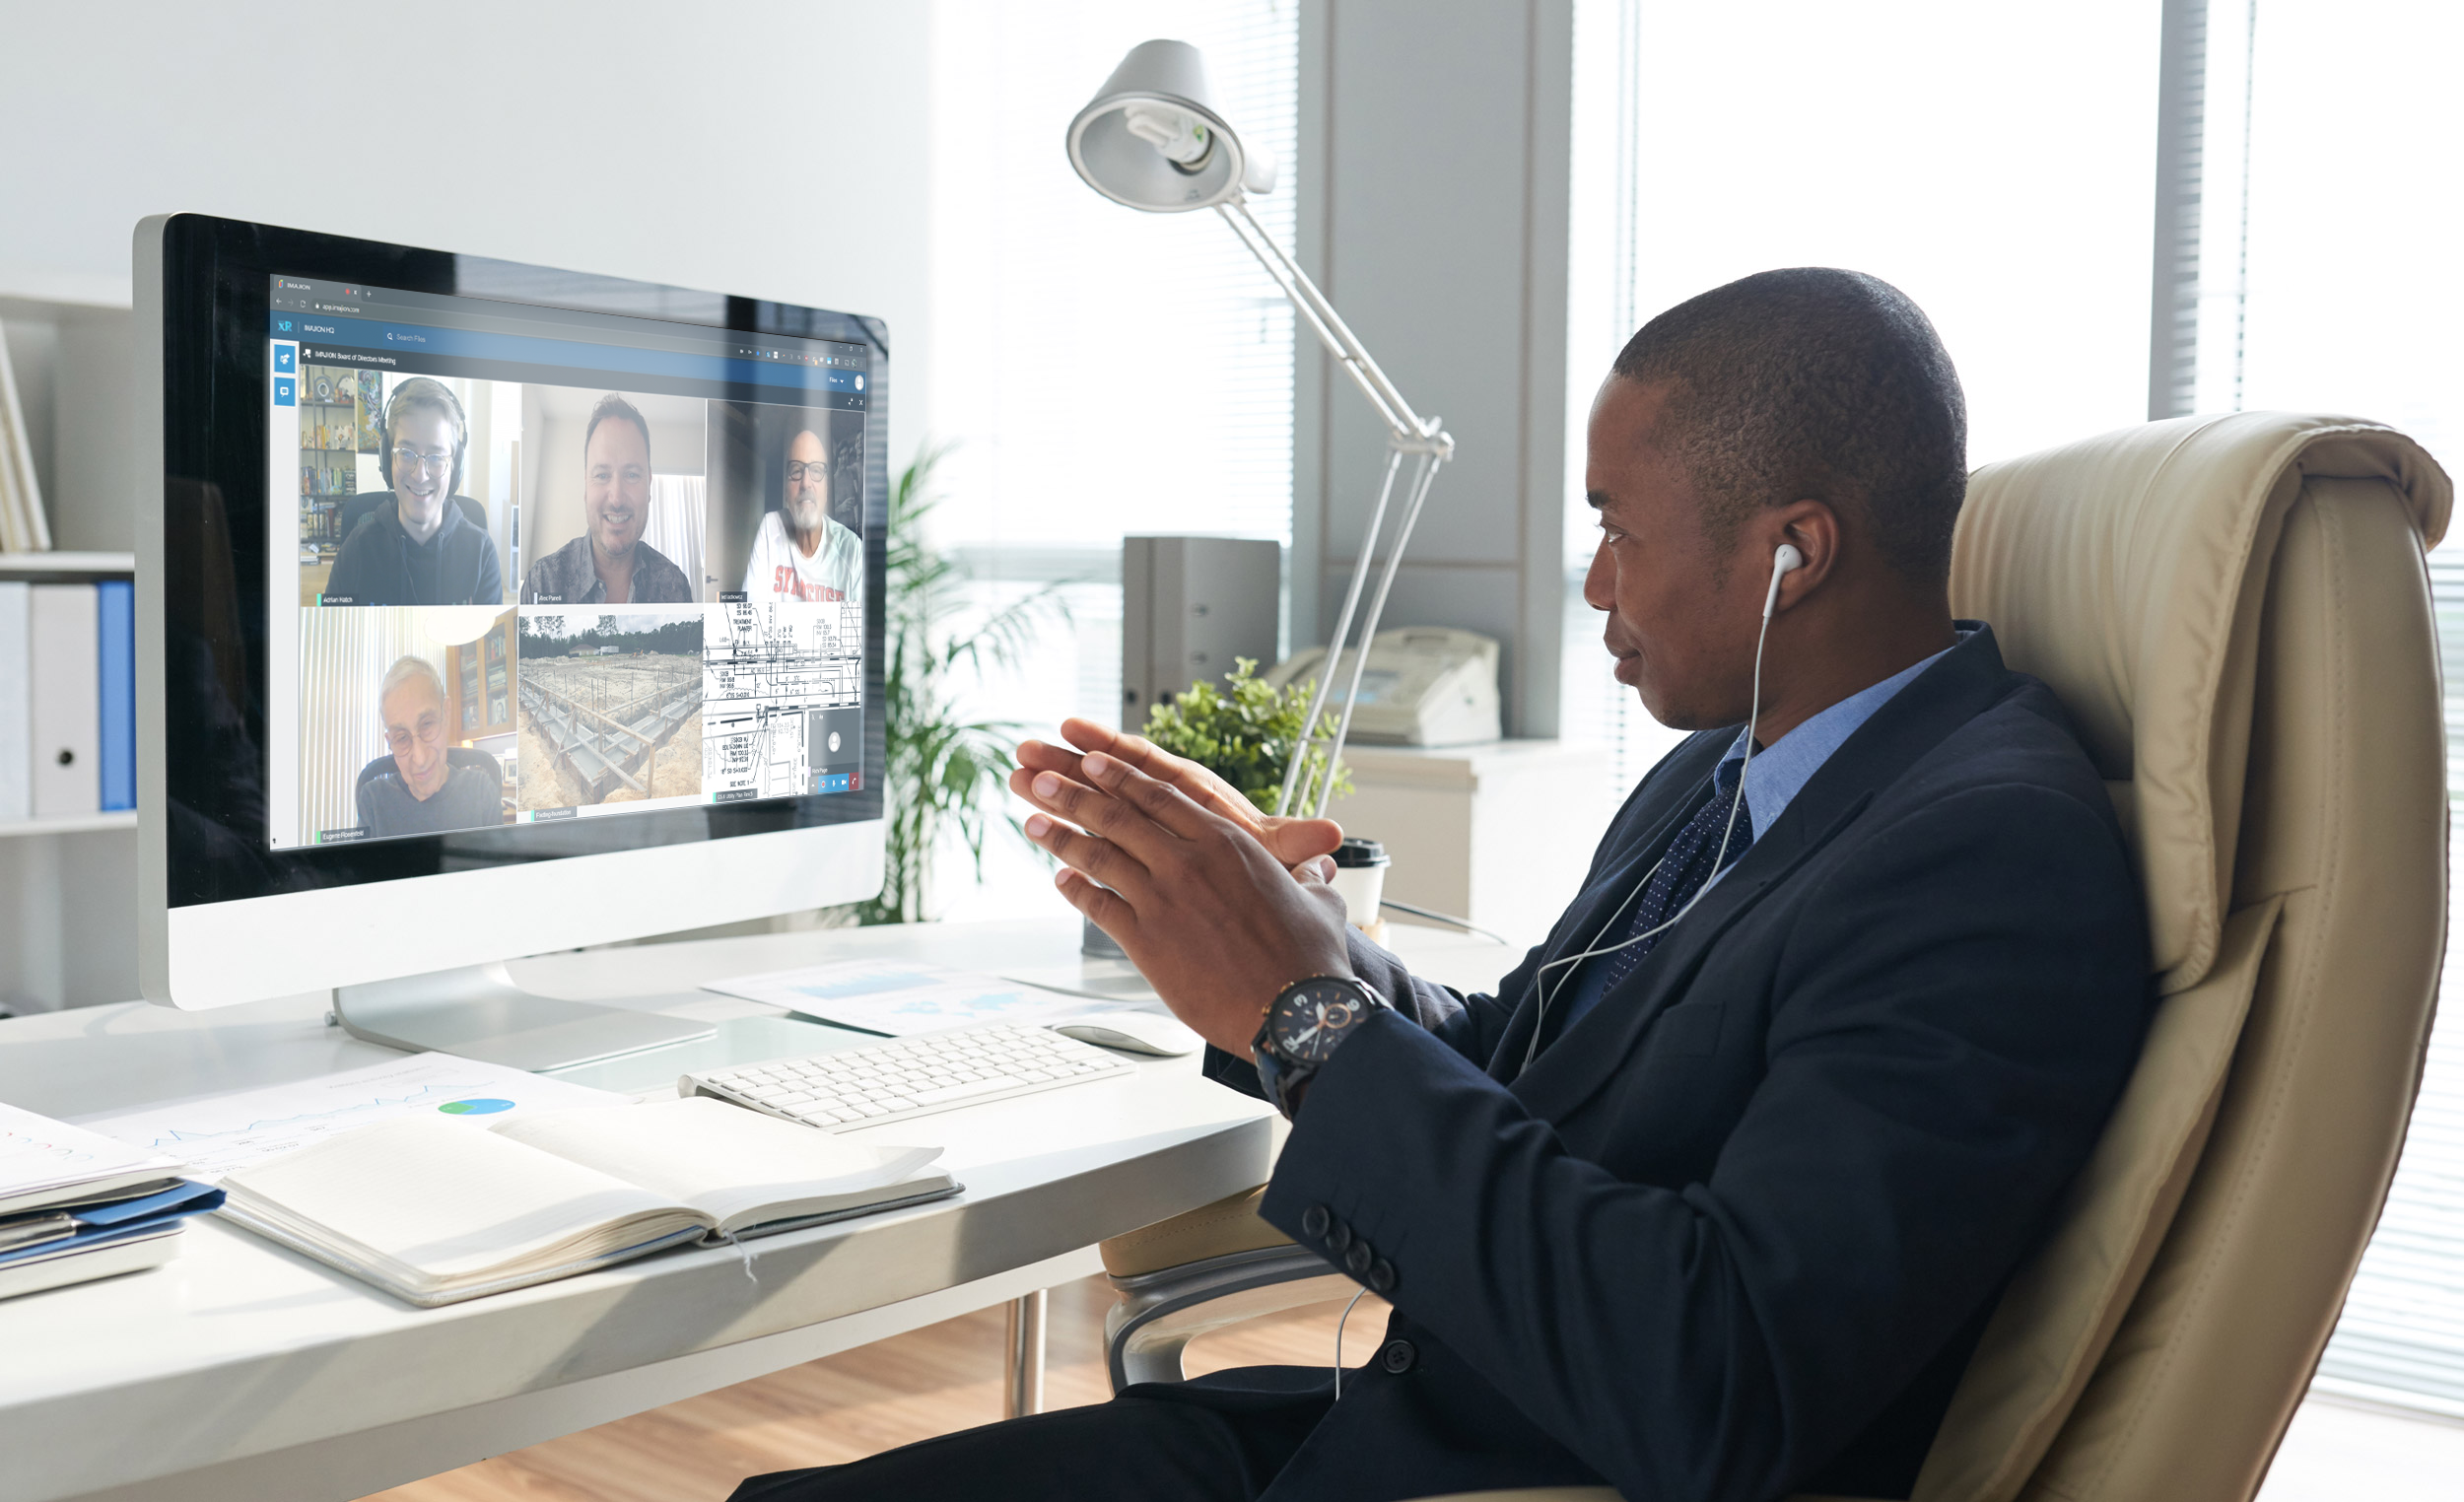 A man attending a video conference at a computer